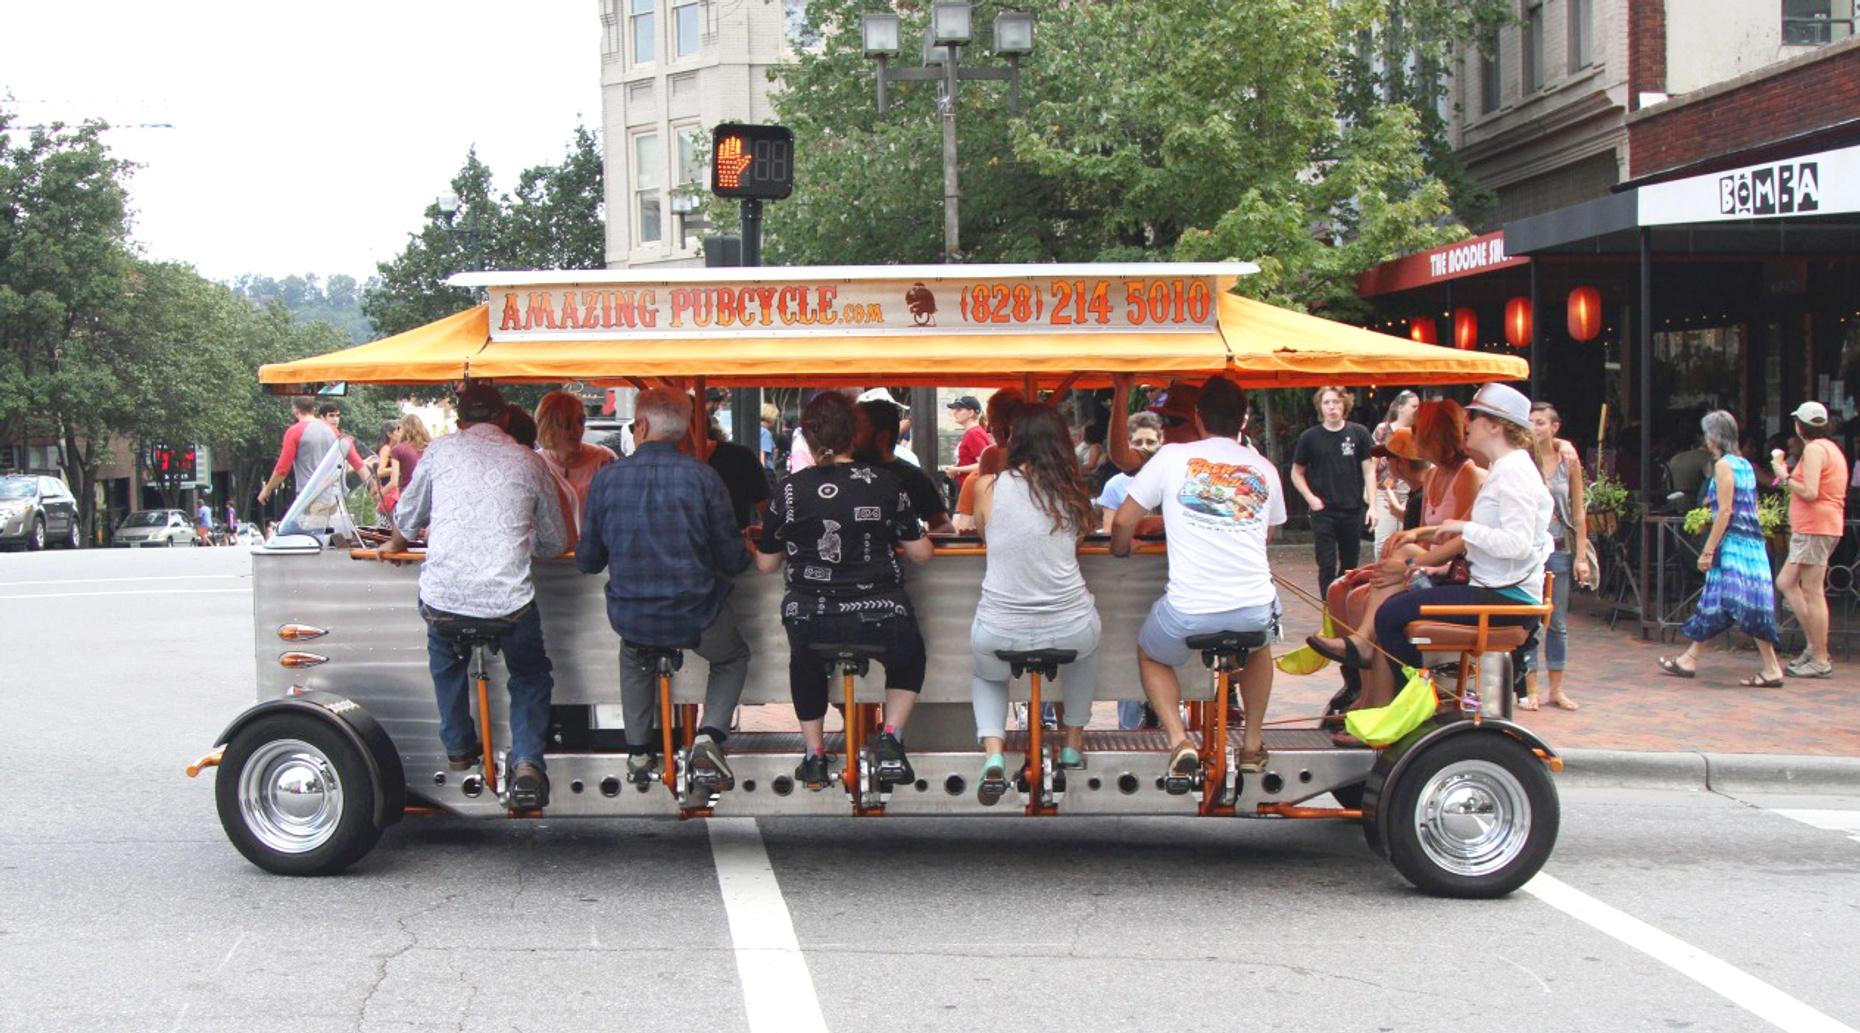 Pub Crawl Pedal Bike in Orlando